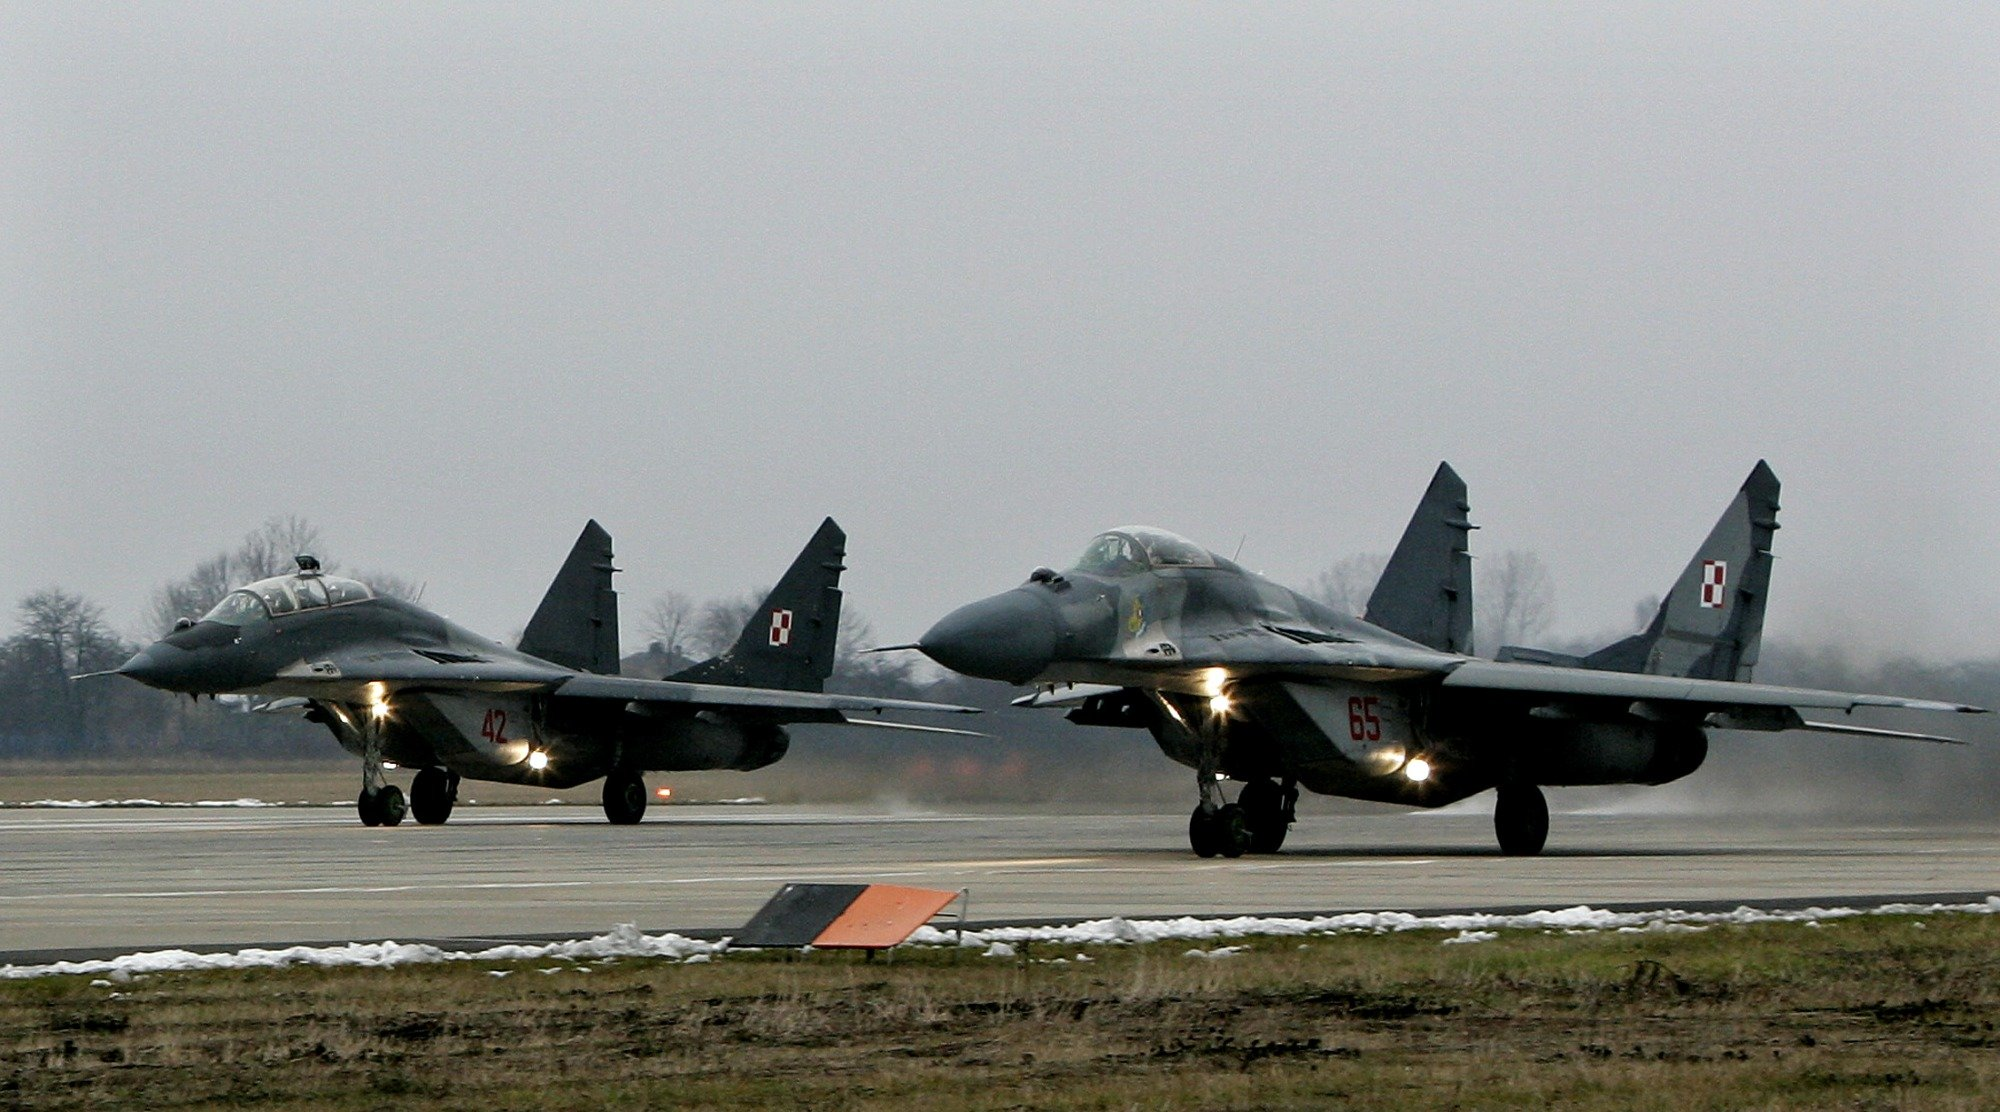 Thanks To Poland, U.S. Pilots Got To Fly Russian MiG-29 Fighter Jets